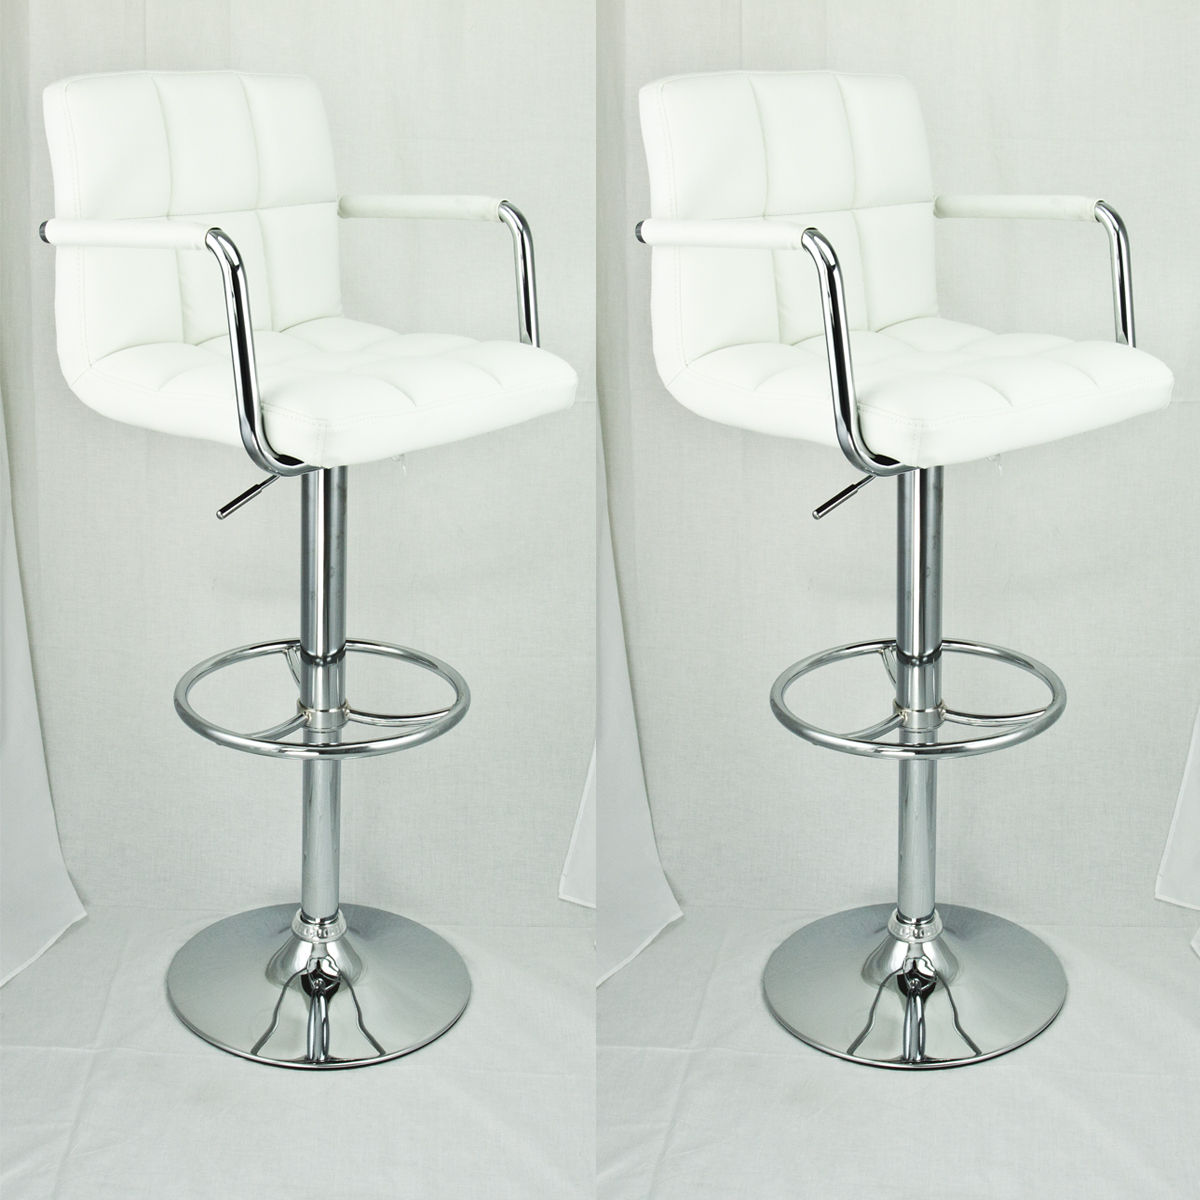 2 Set Swivel Barstools White Arm Leather Modern Adjustable